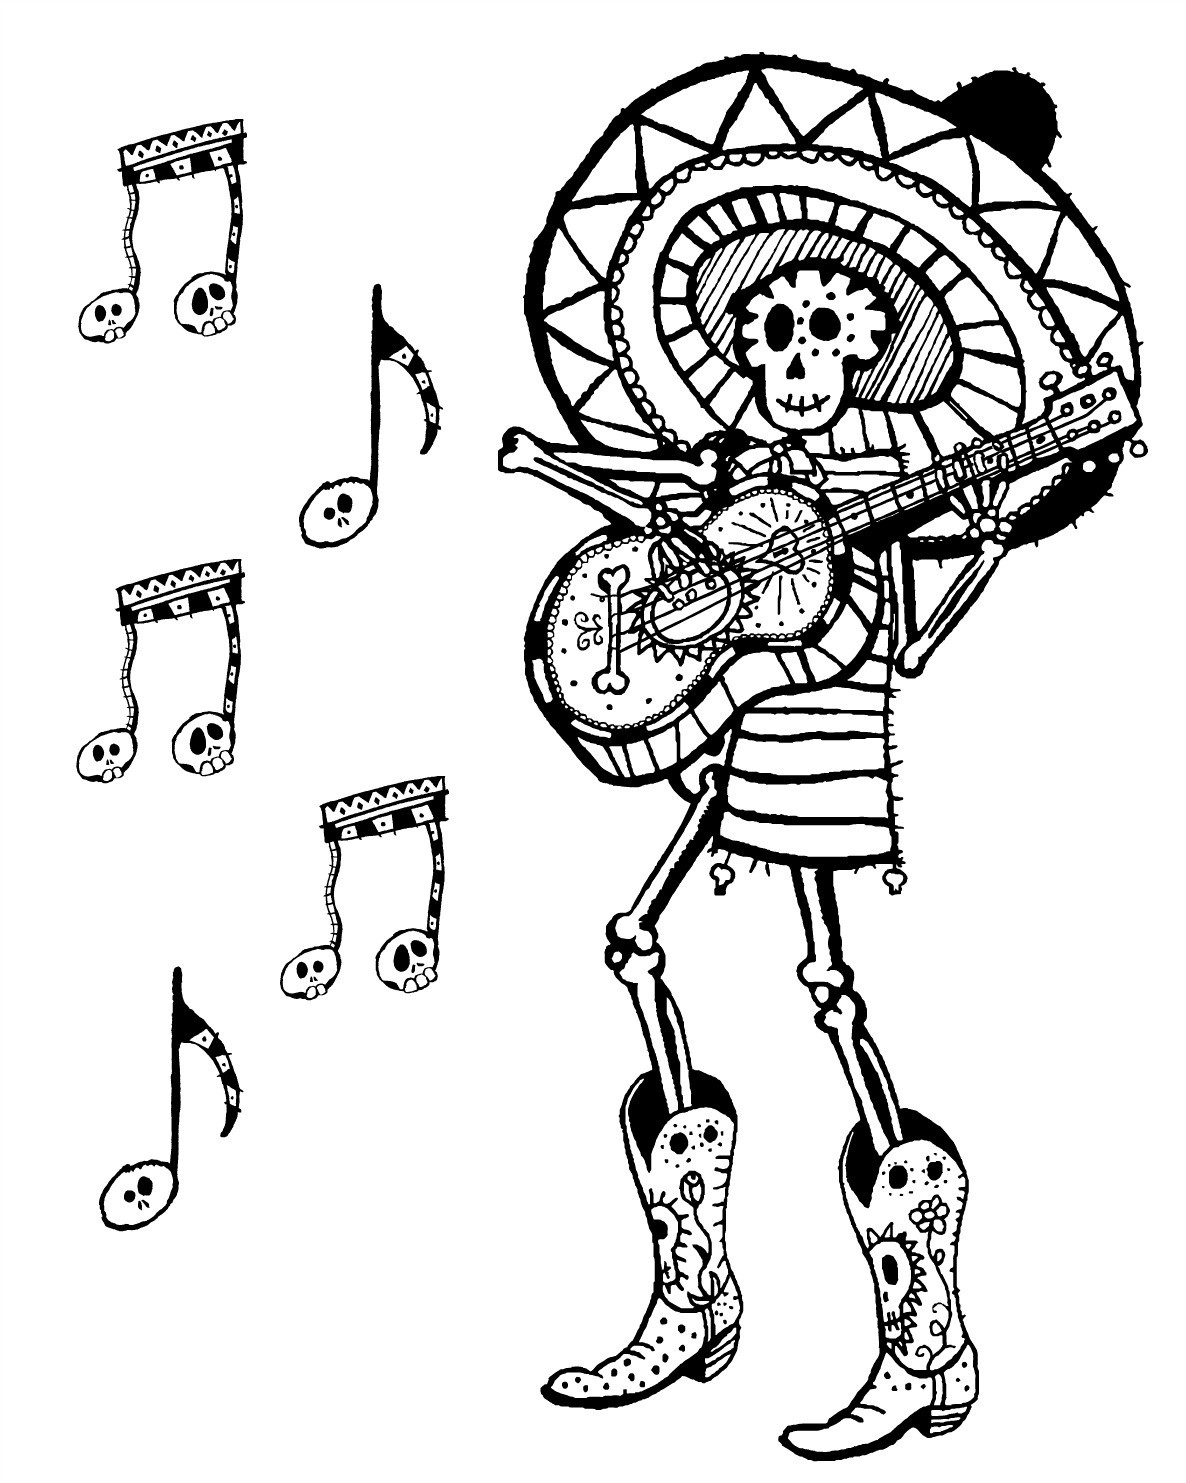 Free Printable Day of the Dead Skeleton Musician Coloring Page #dayofthedead #diadelosmuertos #freeprintable #coloringpage #skeleton #musician #skeletonmusician #sugarskull